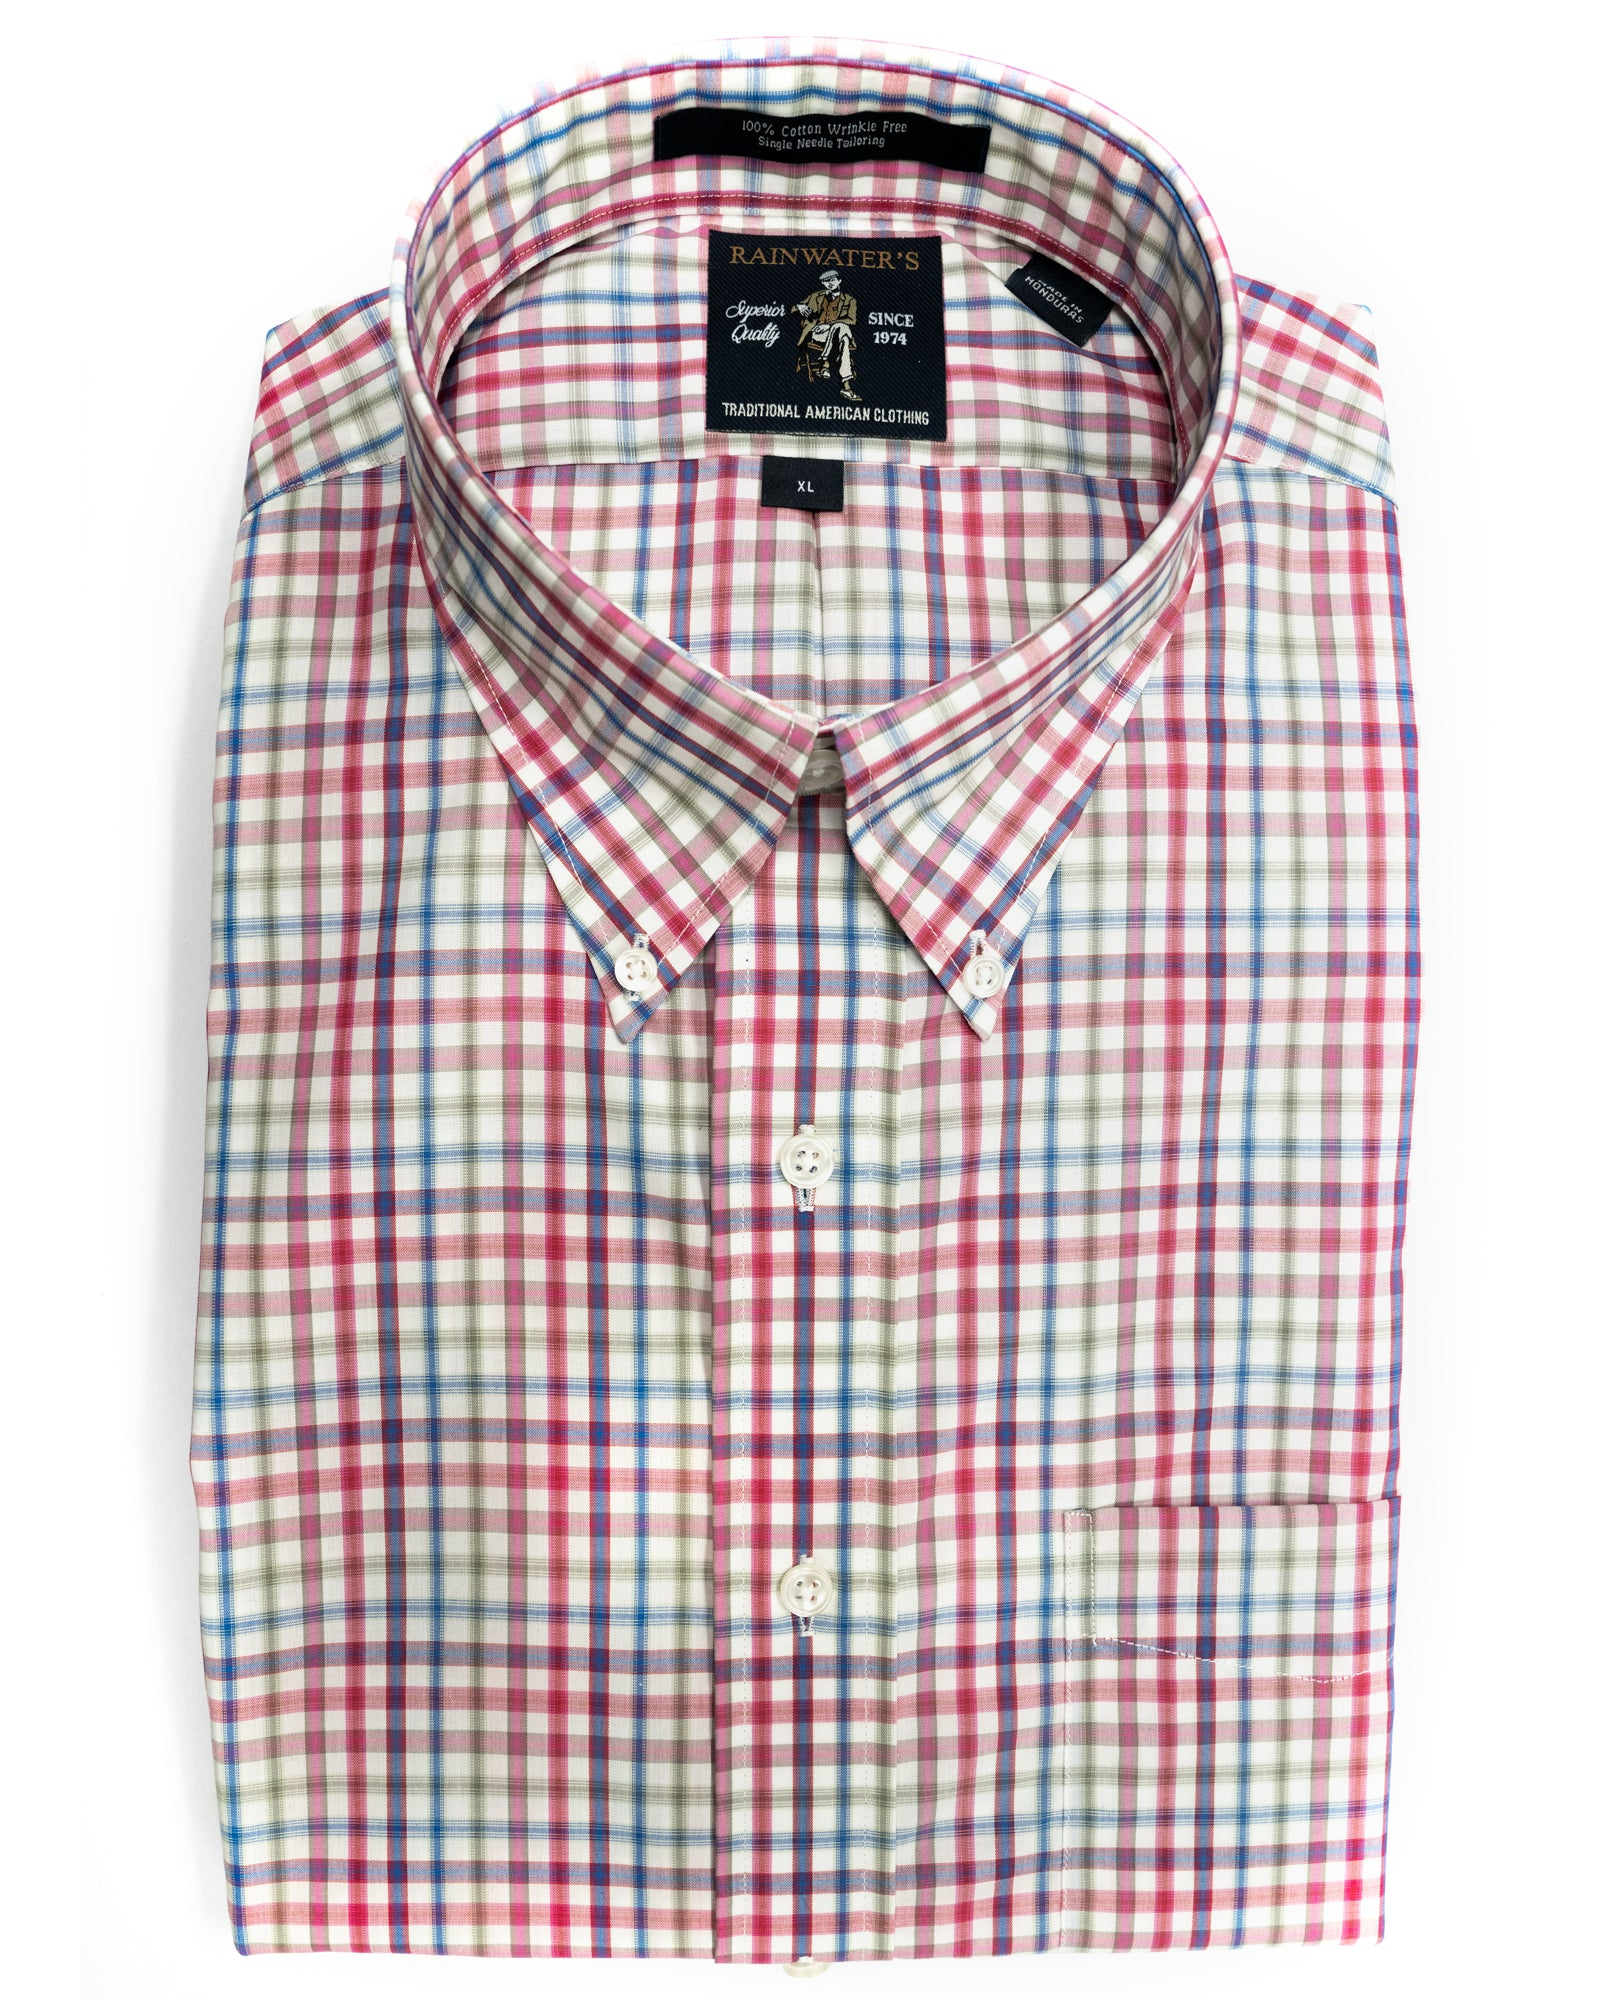 Rainwater's Plaid Button Up in Coral & Blue - Rainwater's Men's Clothing and Tuxedo Rental